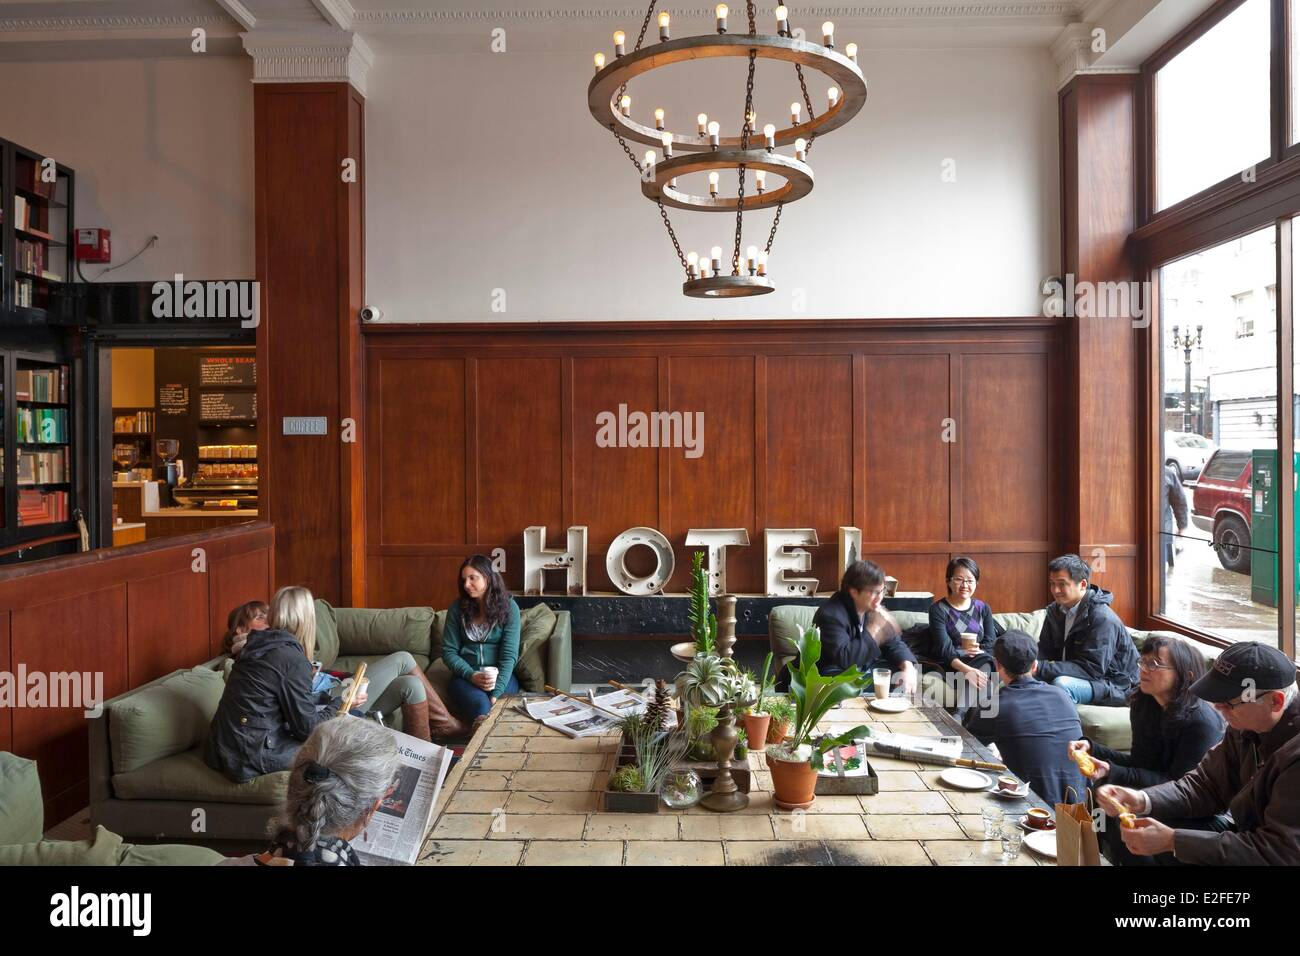 United States, Oregon, Portland, downtown, SW Stark Street, Ace Hotel opened in 2007, lobby - Stock Image